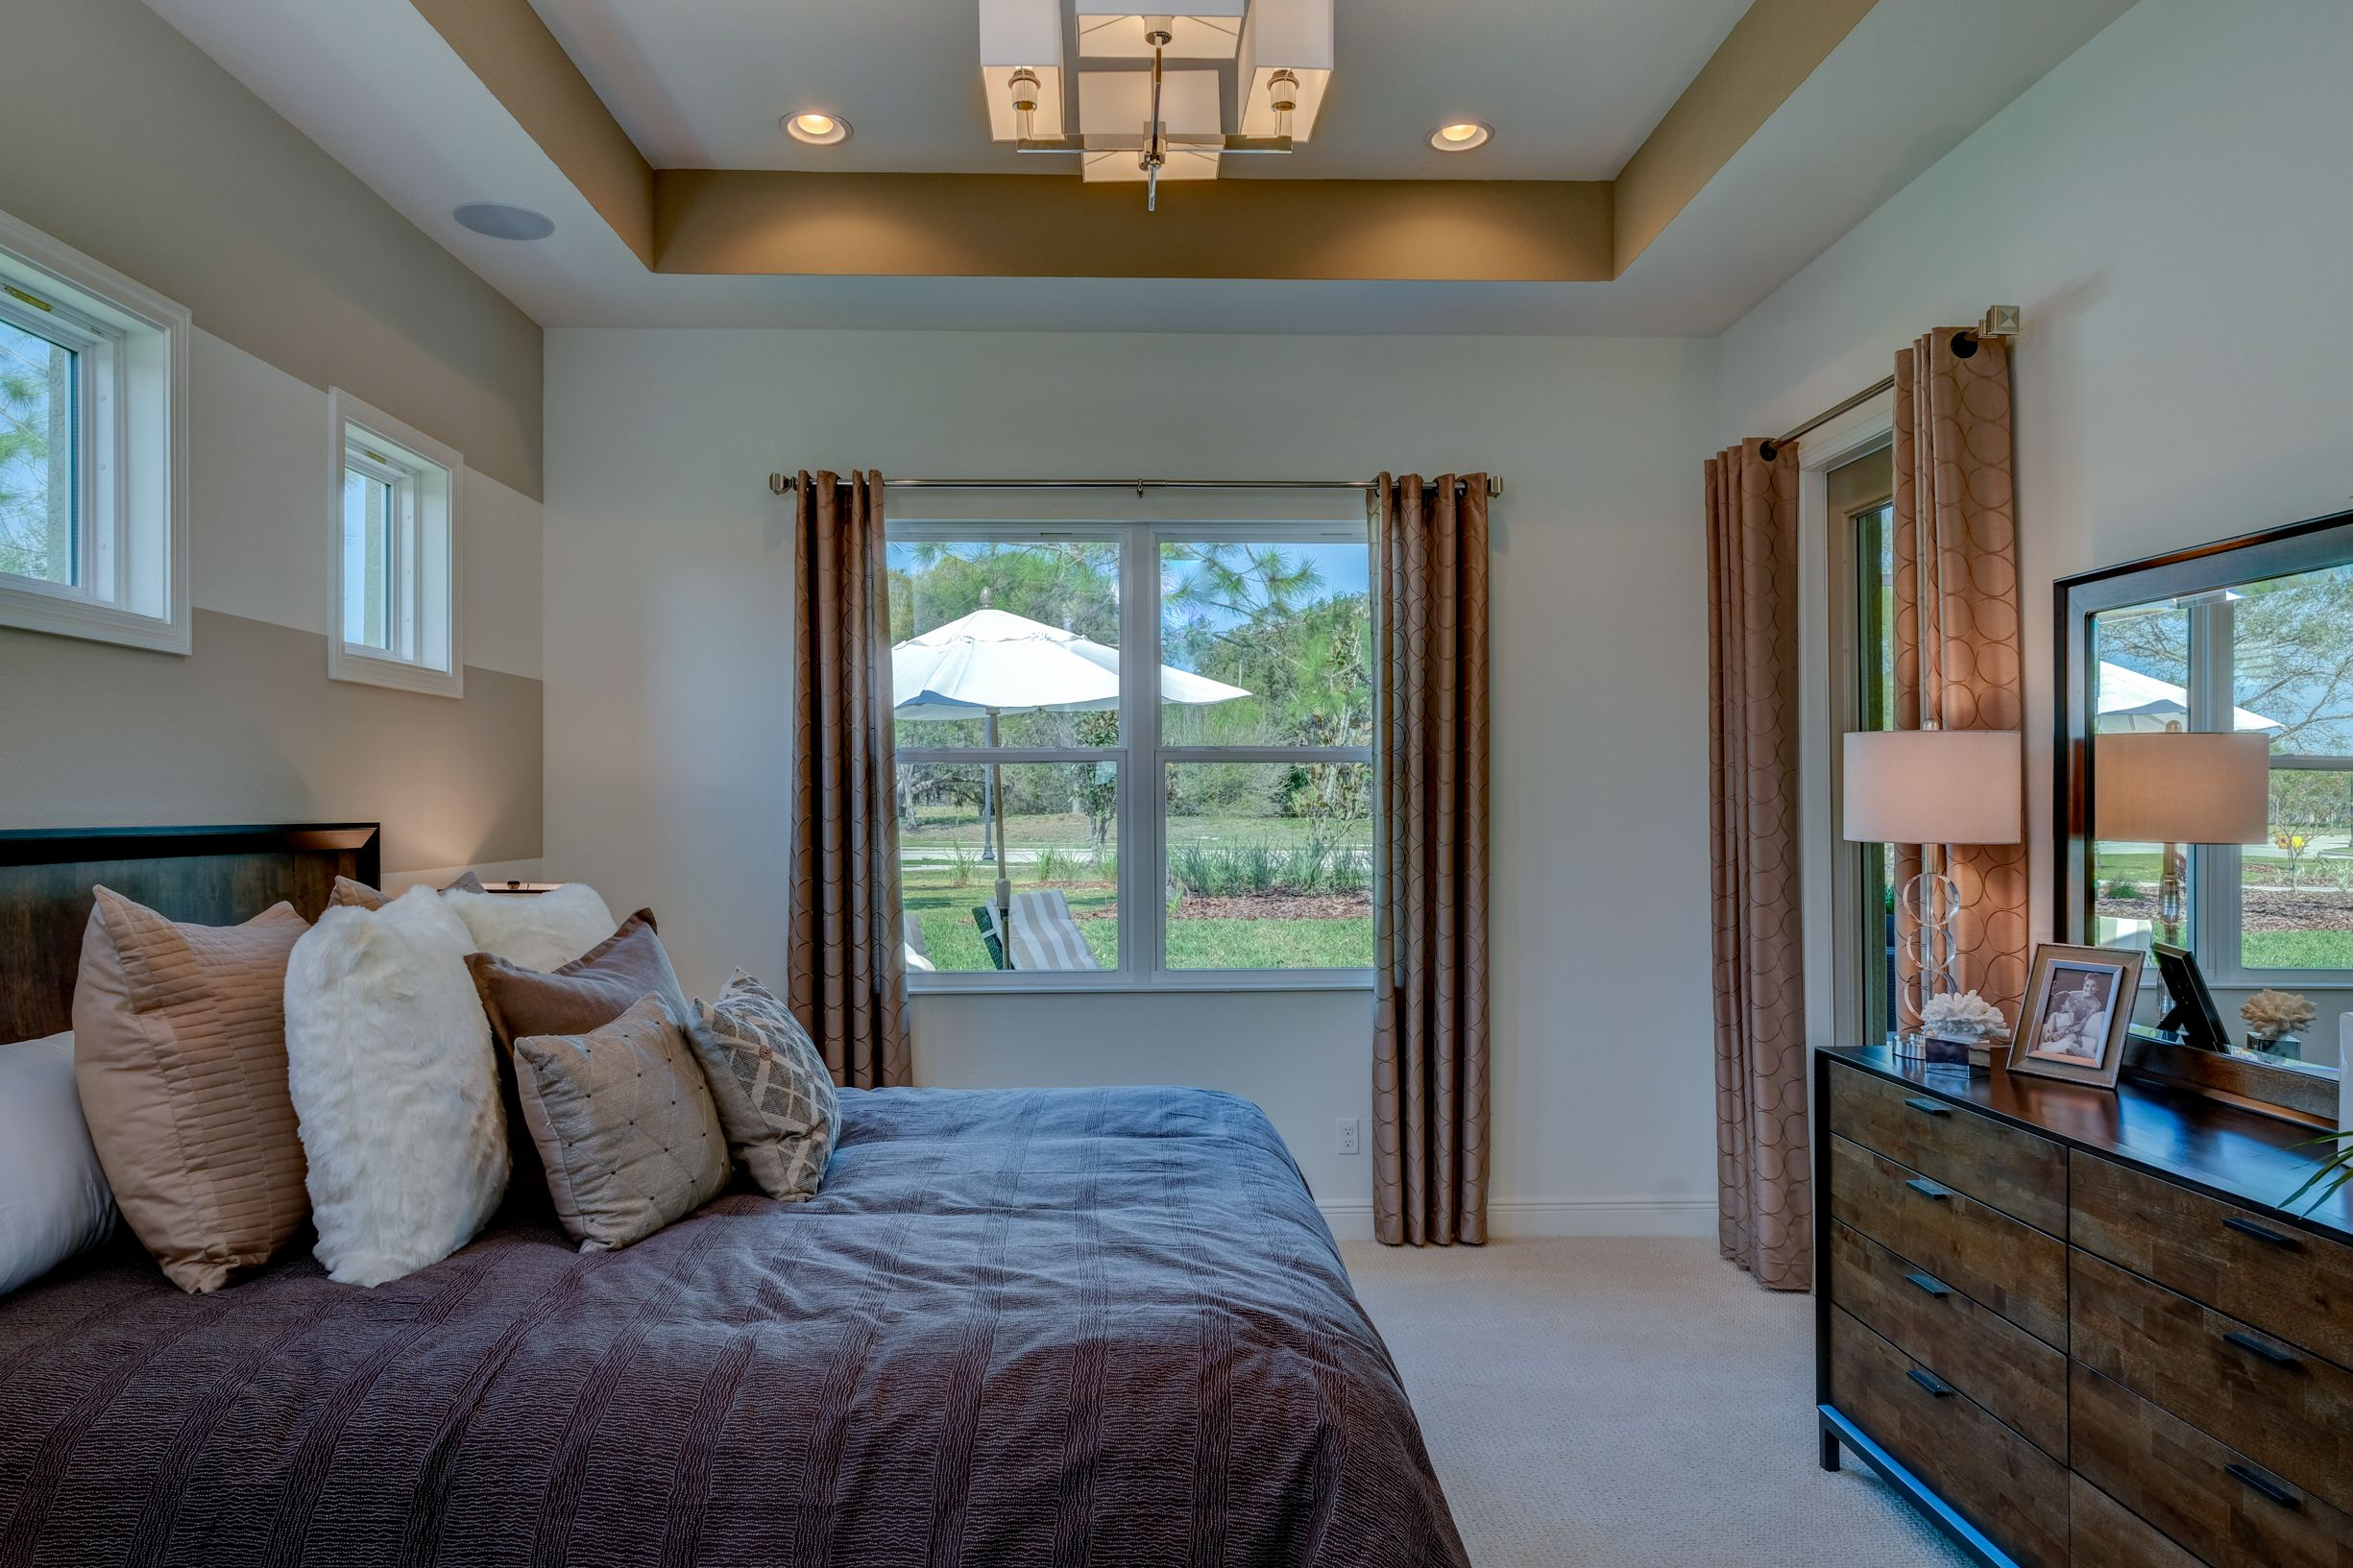 Bedroom featured in the Grenada By Medallion Home in Sarasota-Bradenton, FL